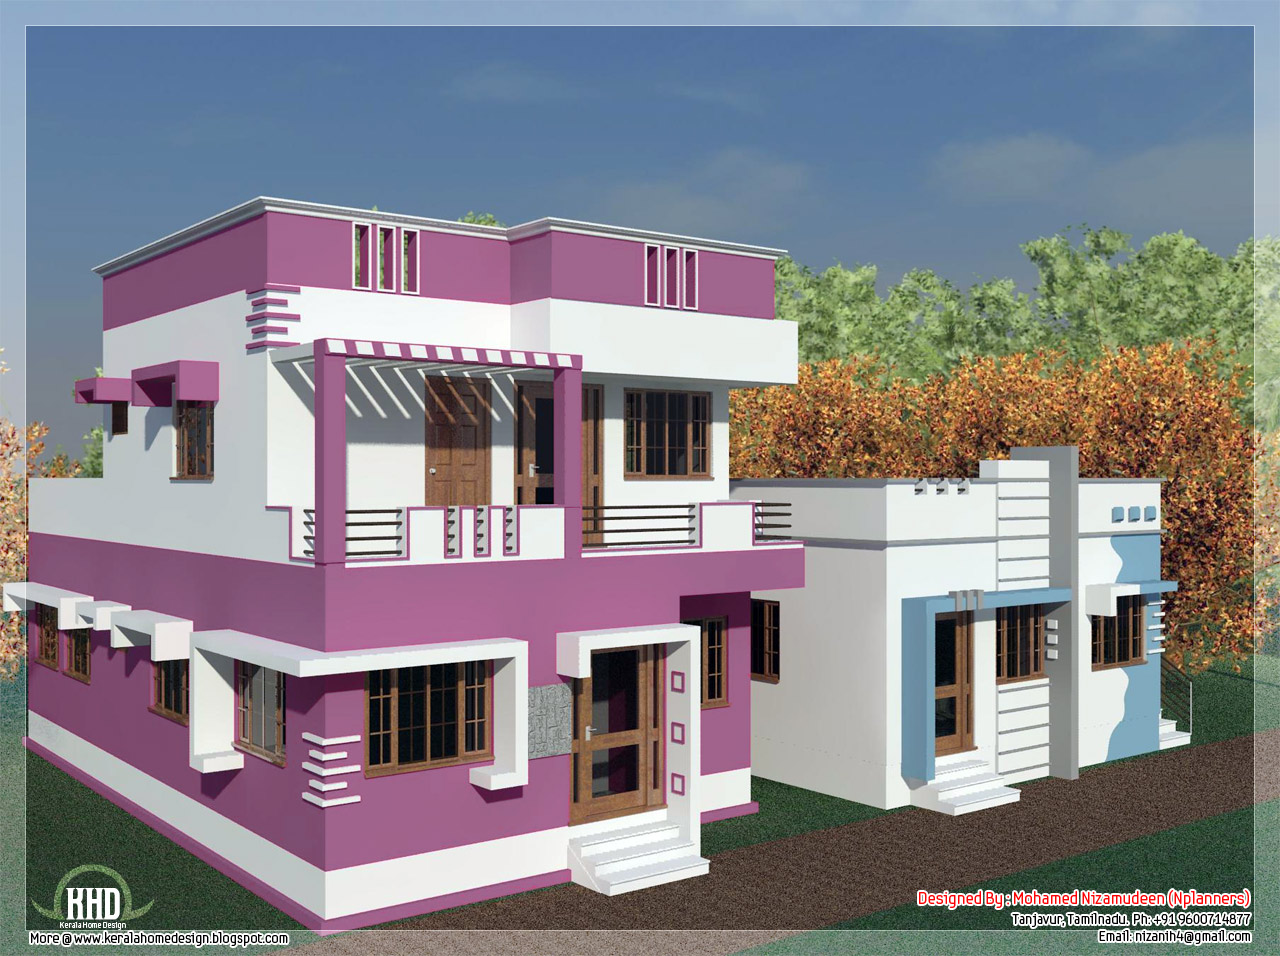 ... home desgin in 3000 sq.feet - Kerala home design - Architecture house: keralahomedesign1.blogspot.com/2013/04/tamilnadu-model-home-desgin...